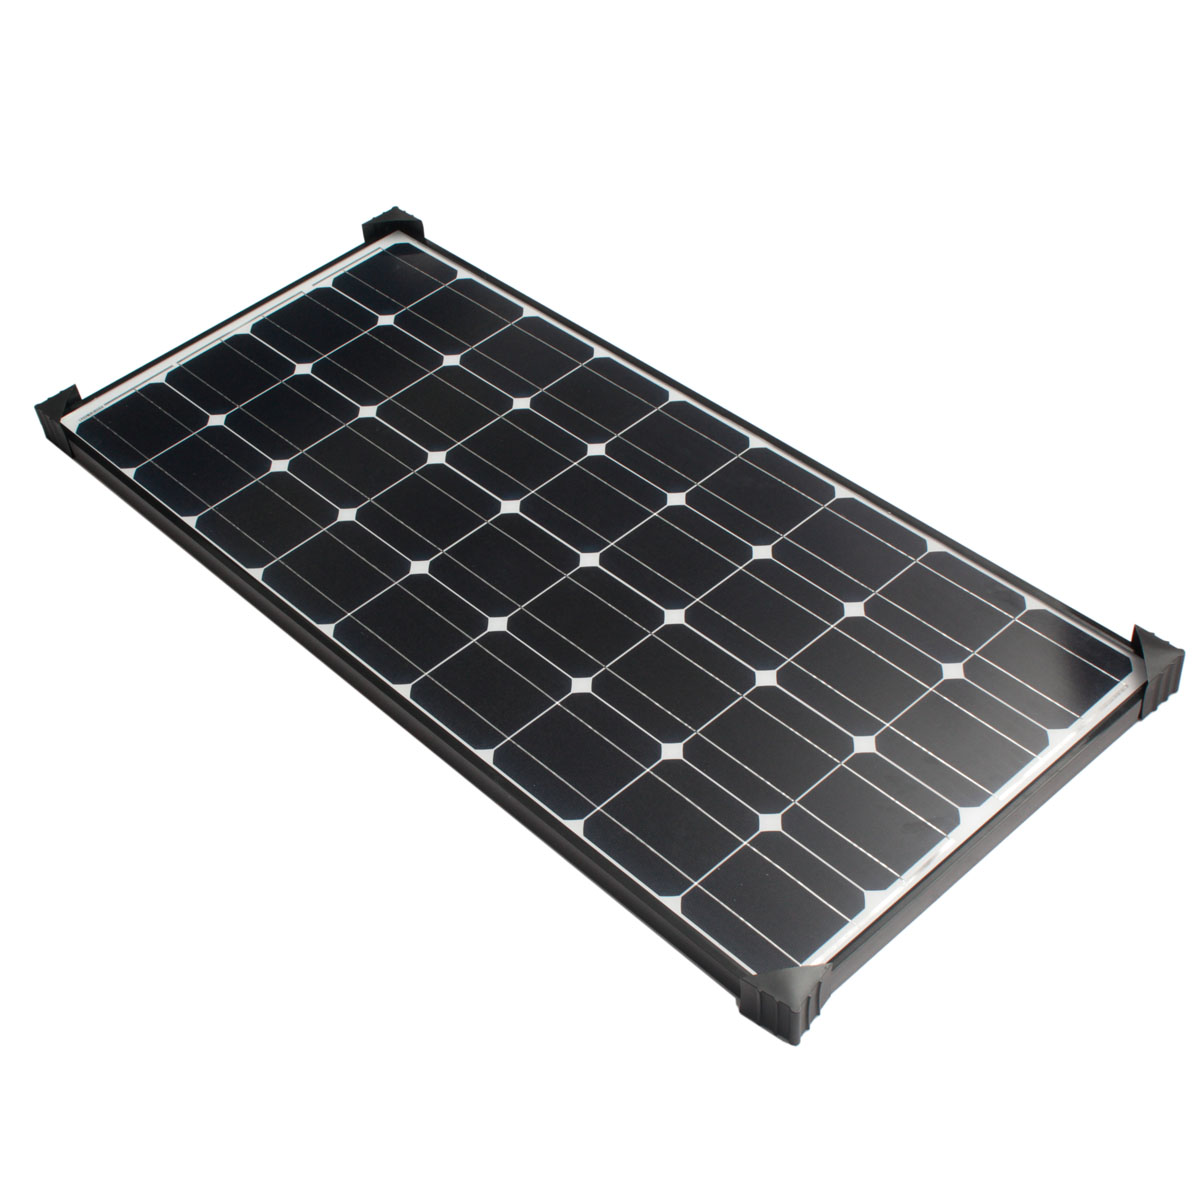 Elfeland Sm 100m 1200x540x30mm 100w Solar Panel For 12v